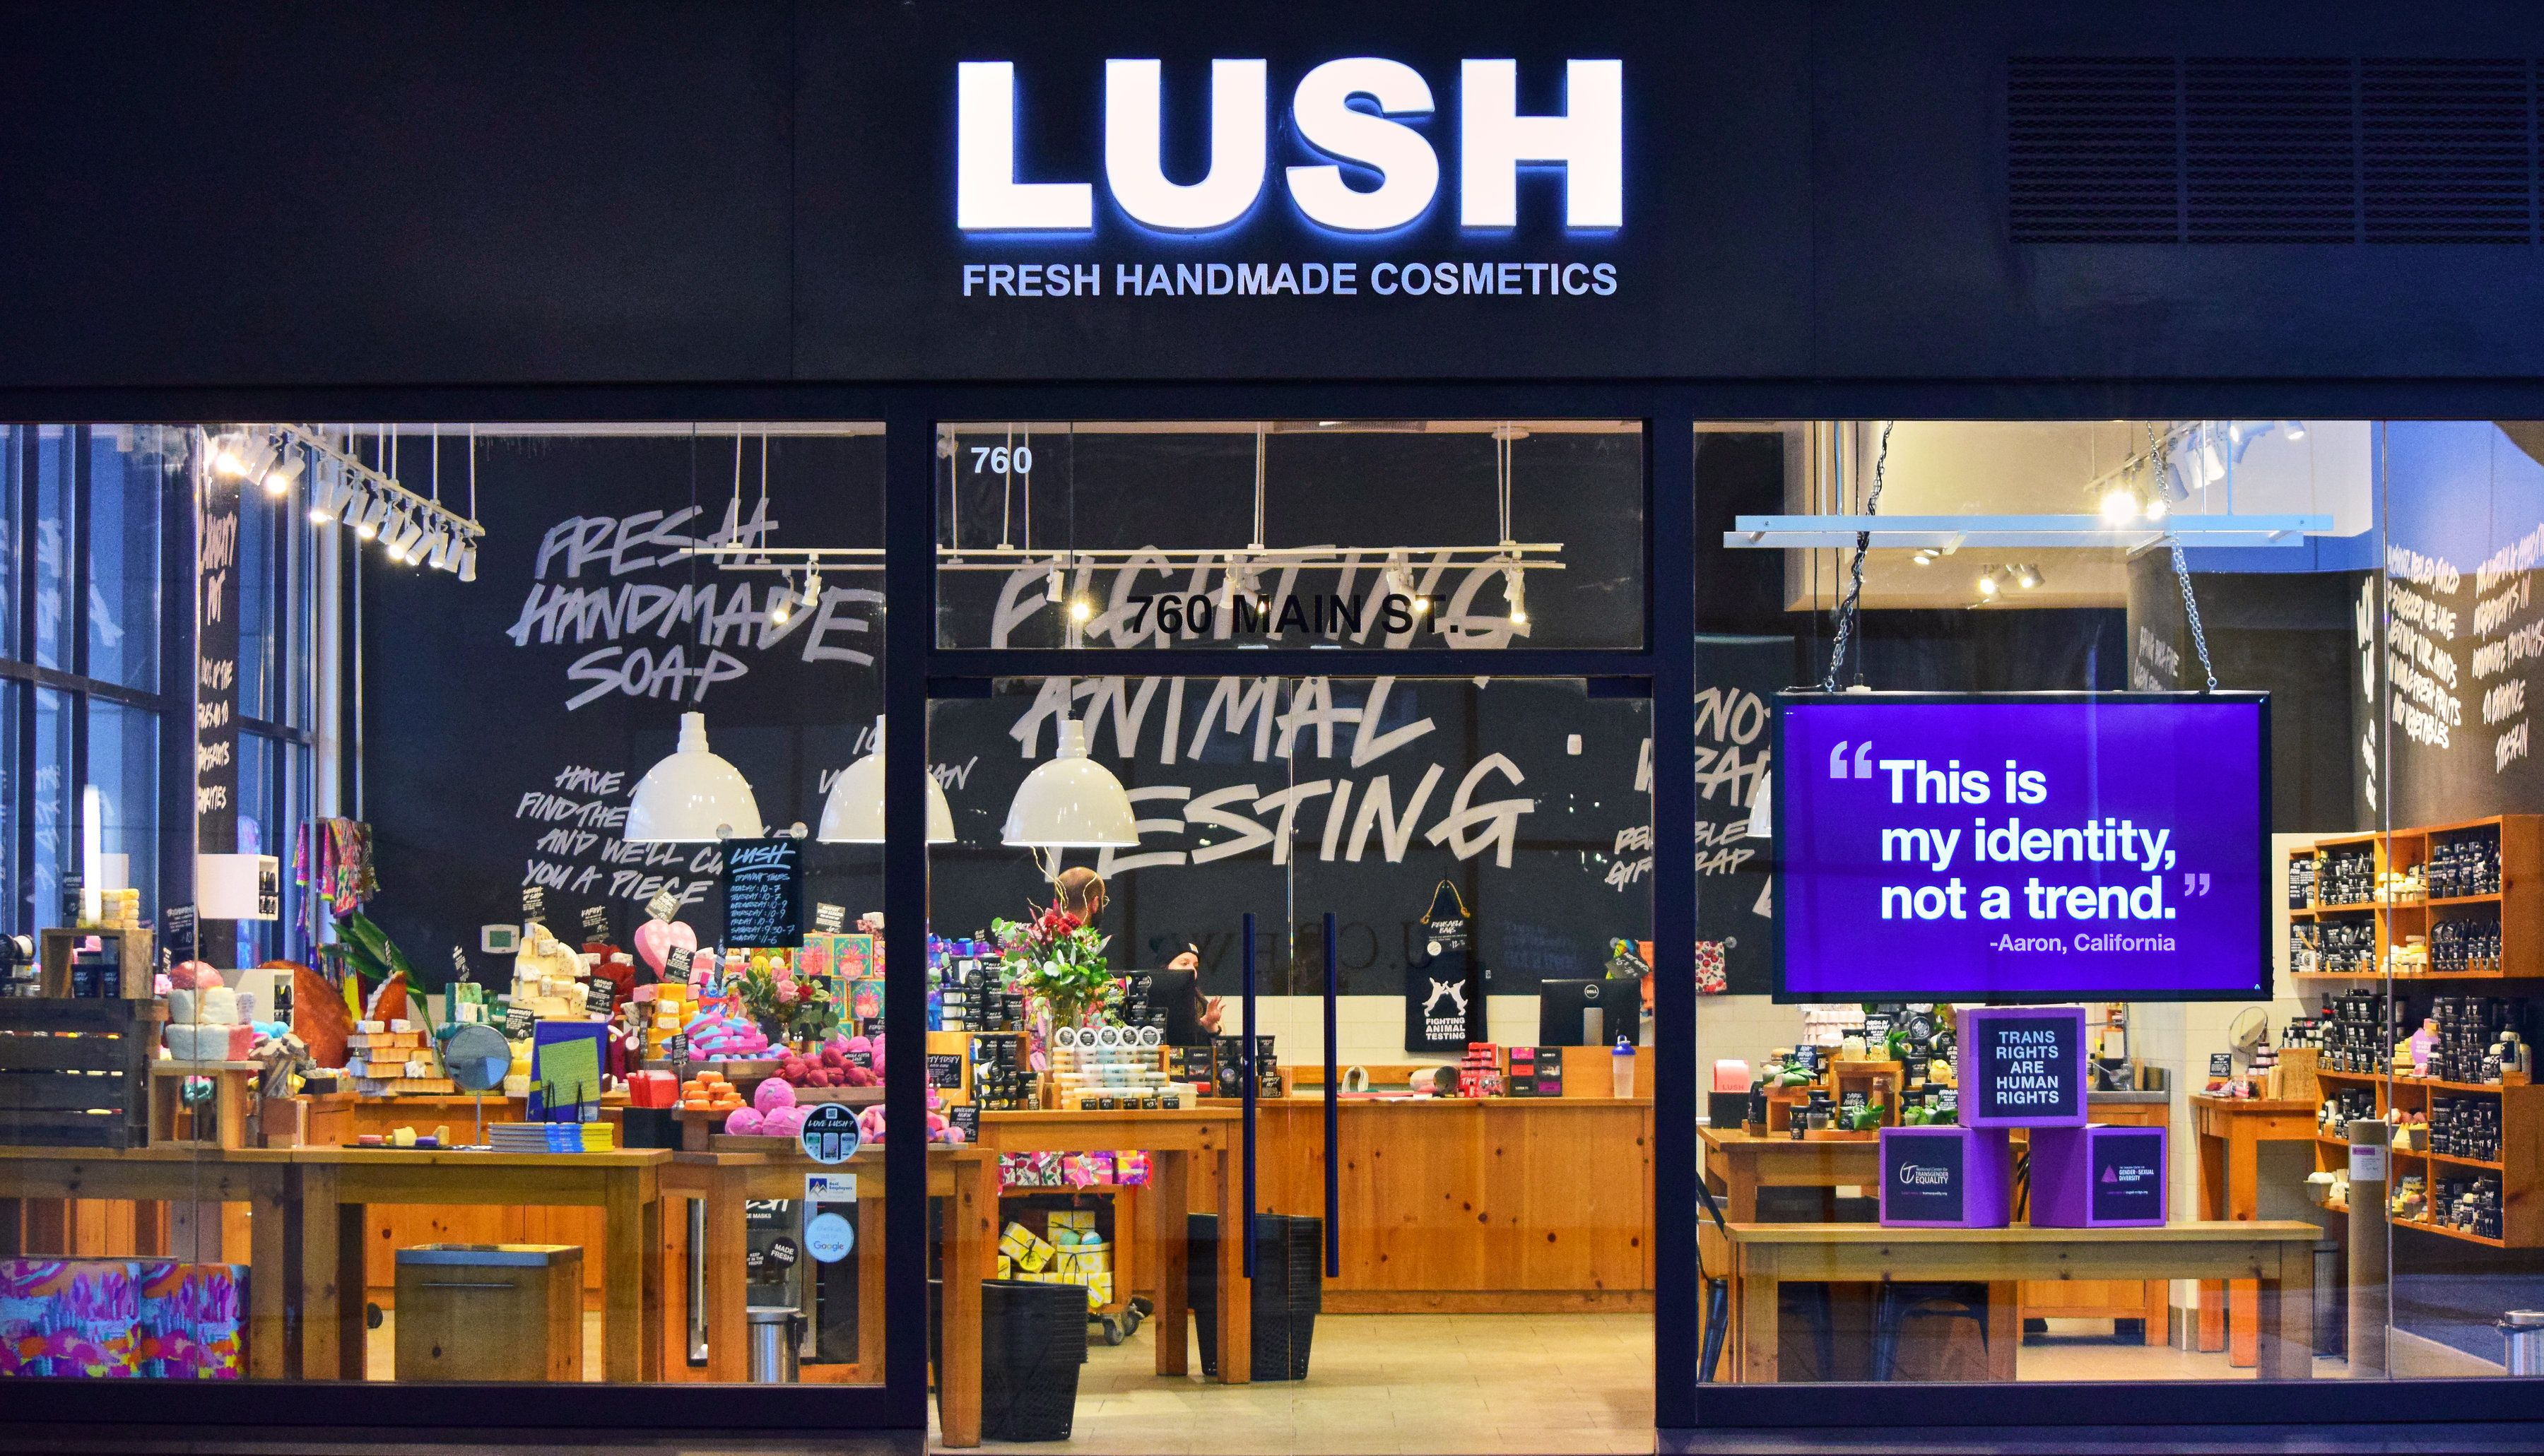 On Feb. 15, Lush Cosmetics kicked off its #TransRightsAreHumanRights campaign.